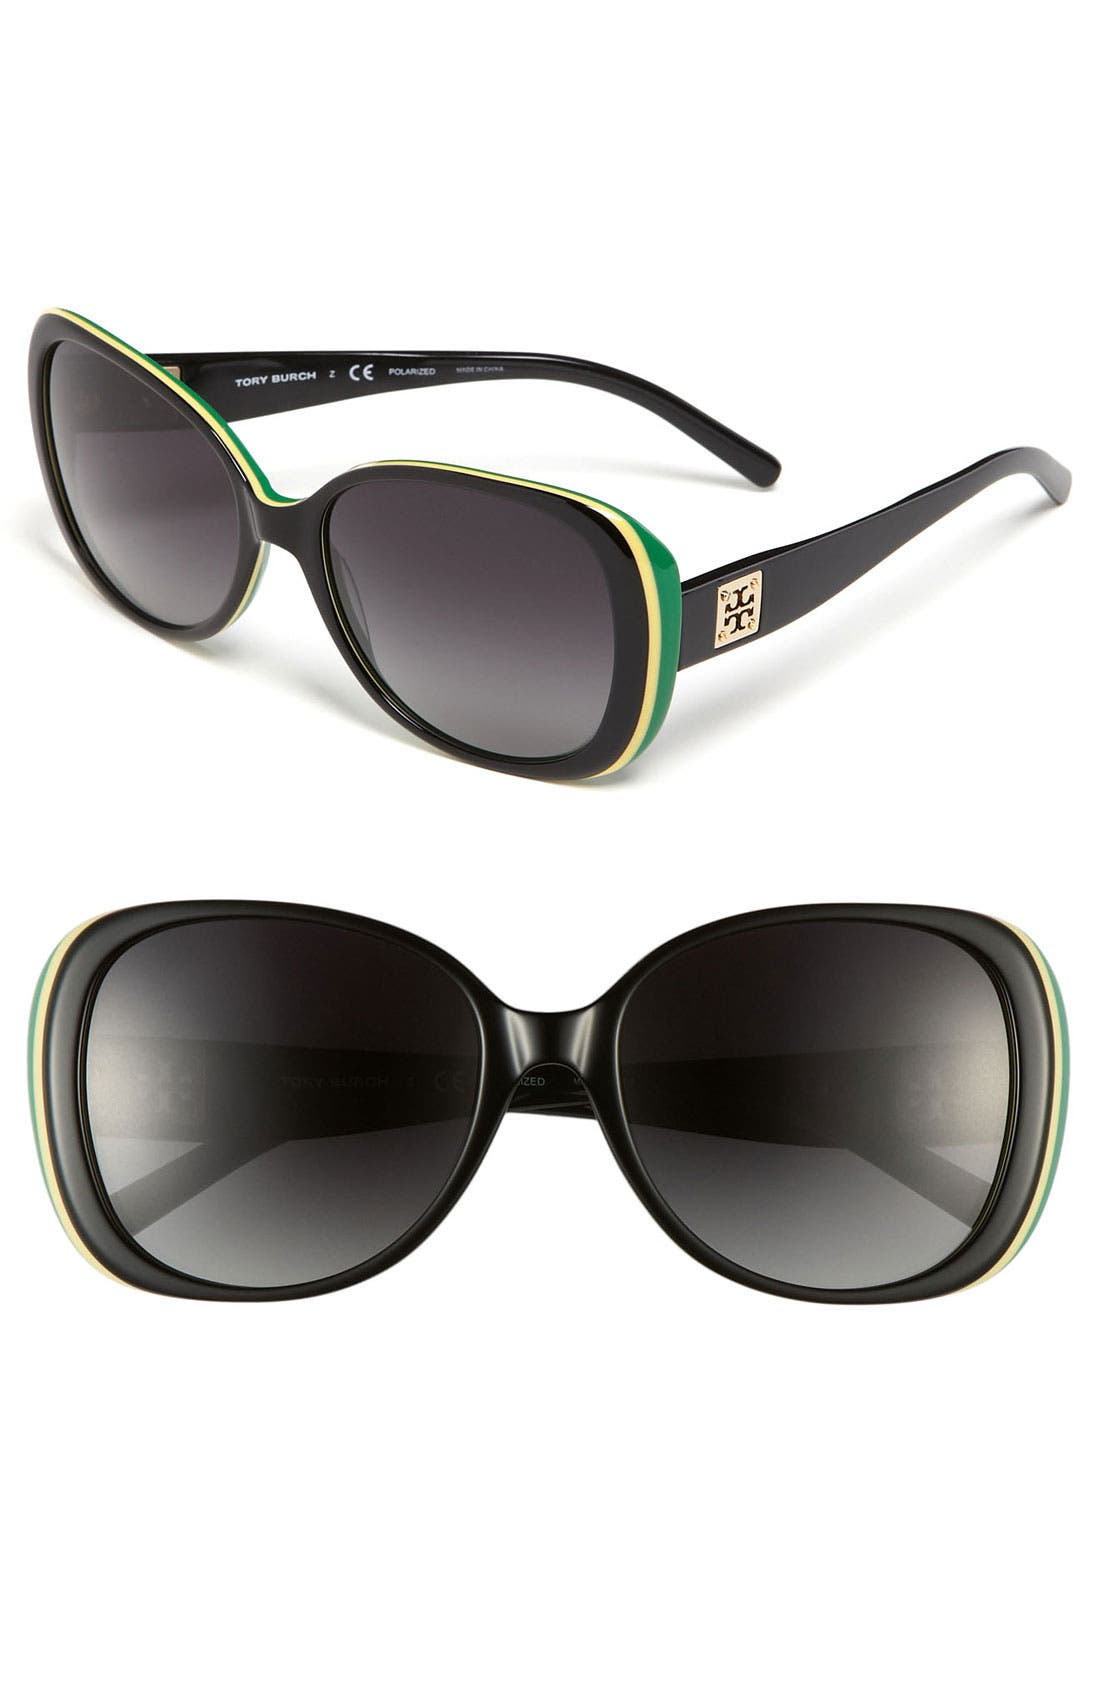 Main Image - Tory Burch 57mm Polarized Oversized Sunglasses